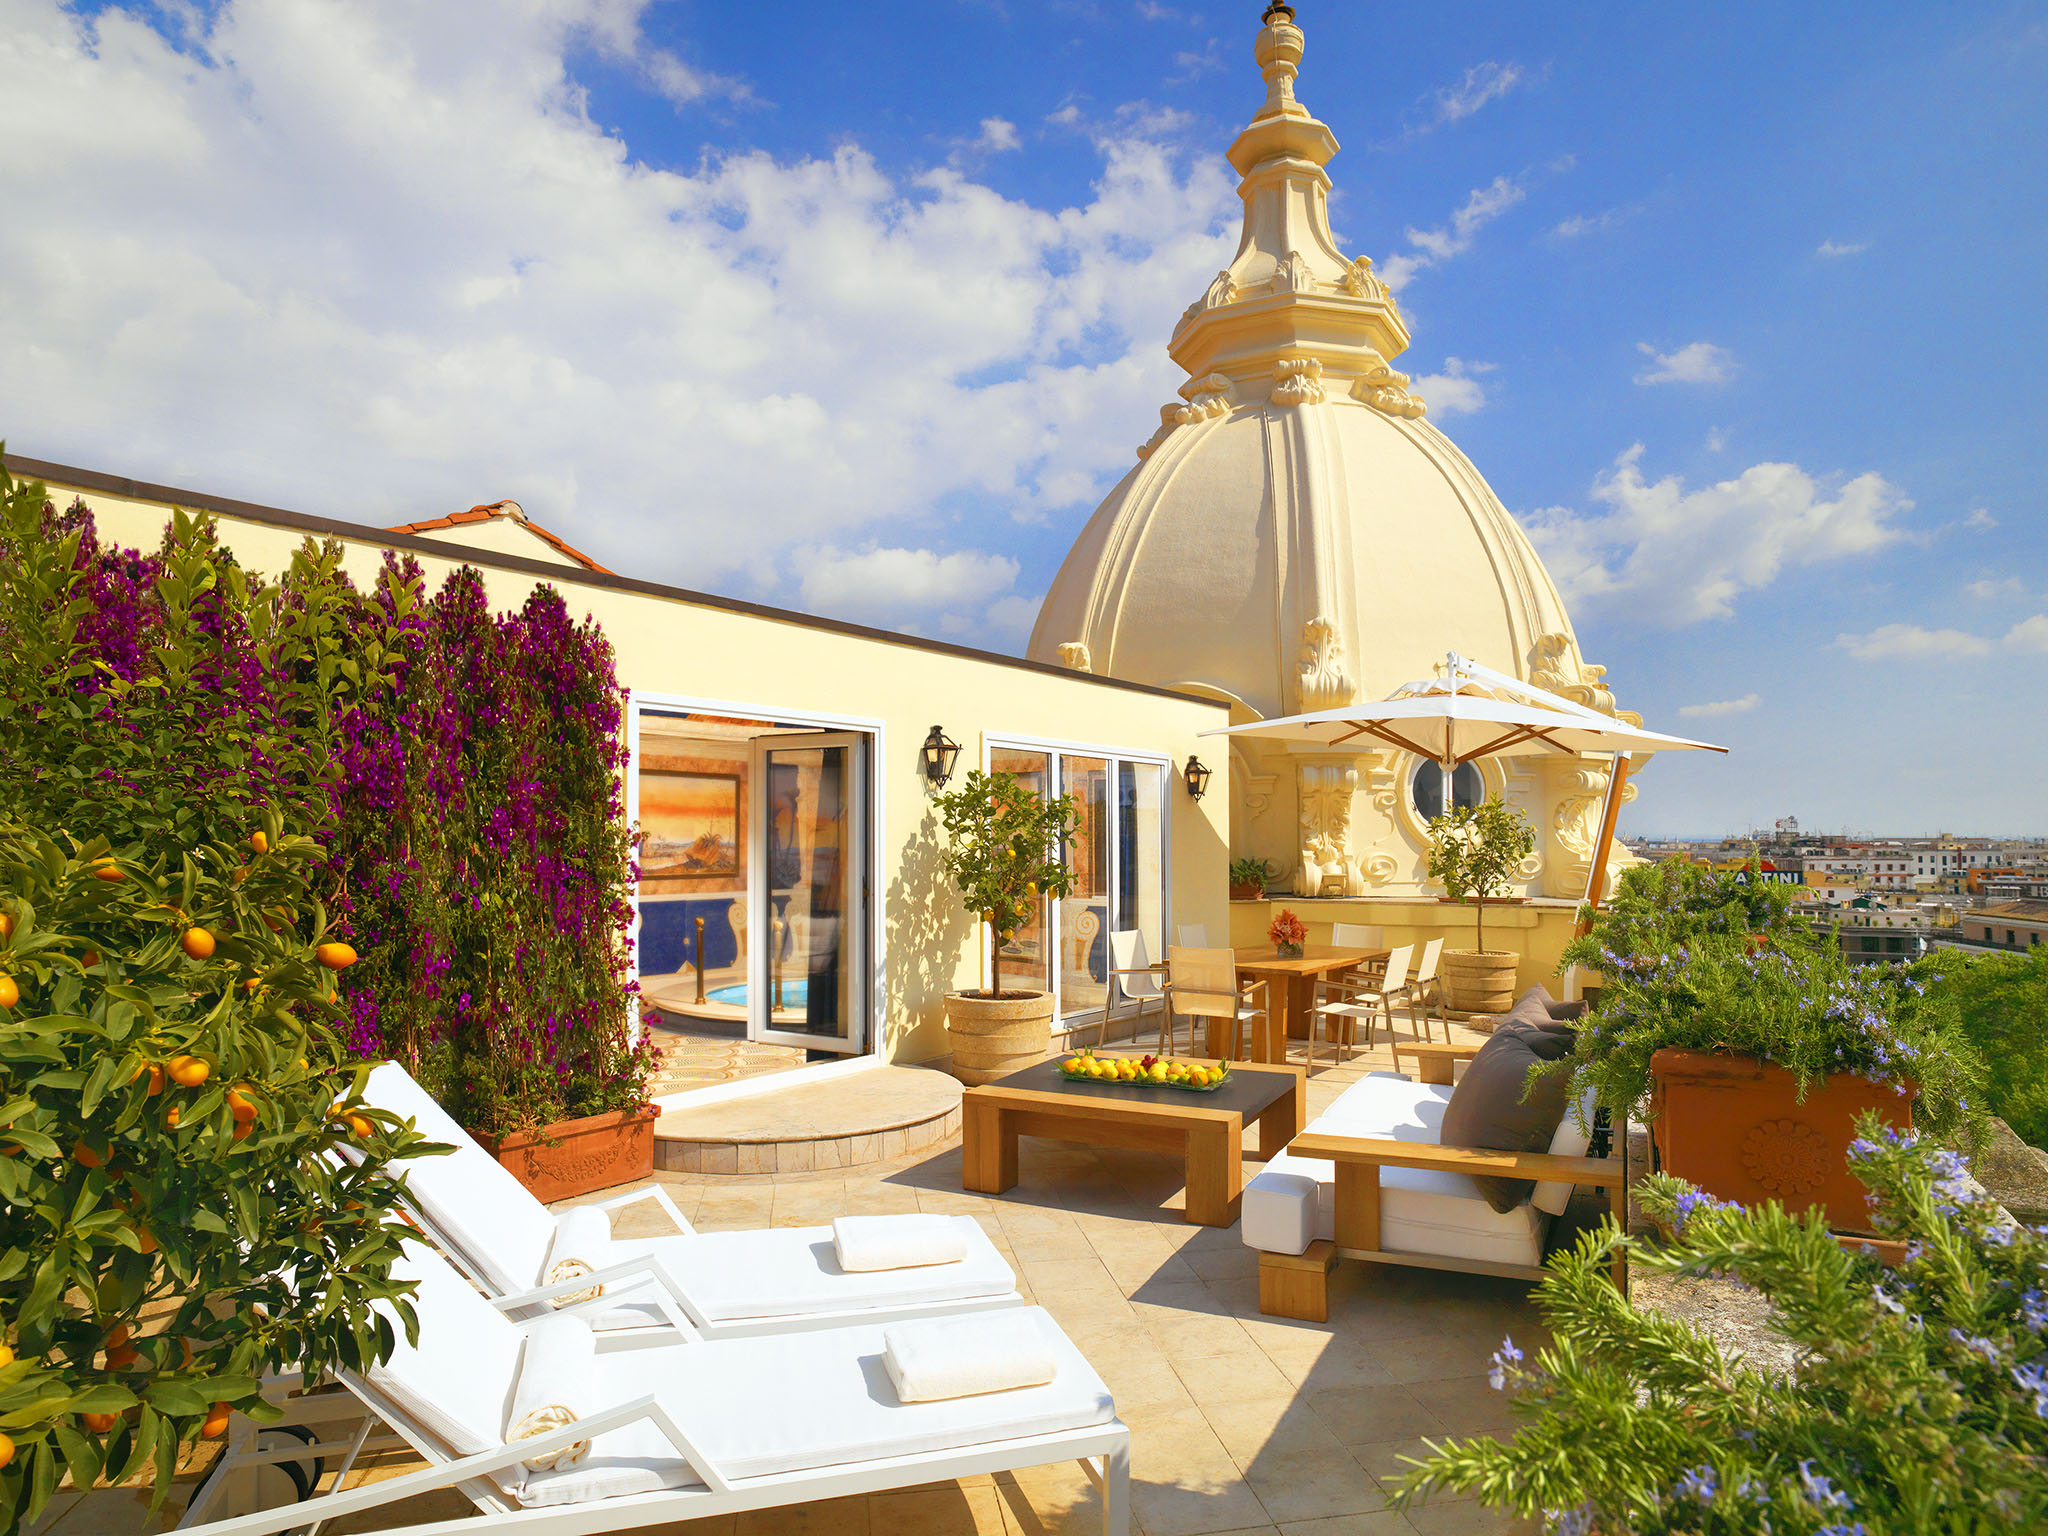 stackliving-luxurious-hotels-06-Westin-Excelsior-Rome-03-rooftop-balcony-view